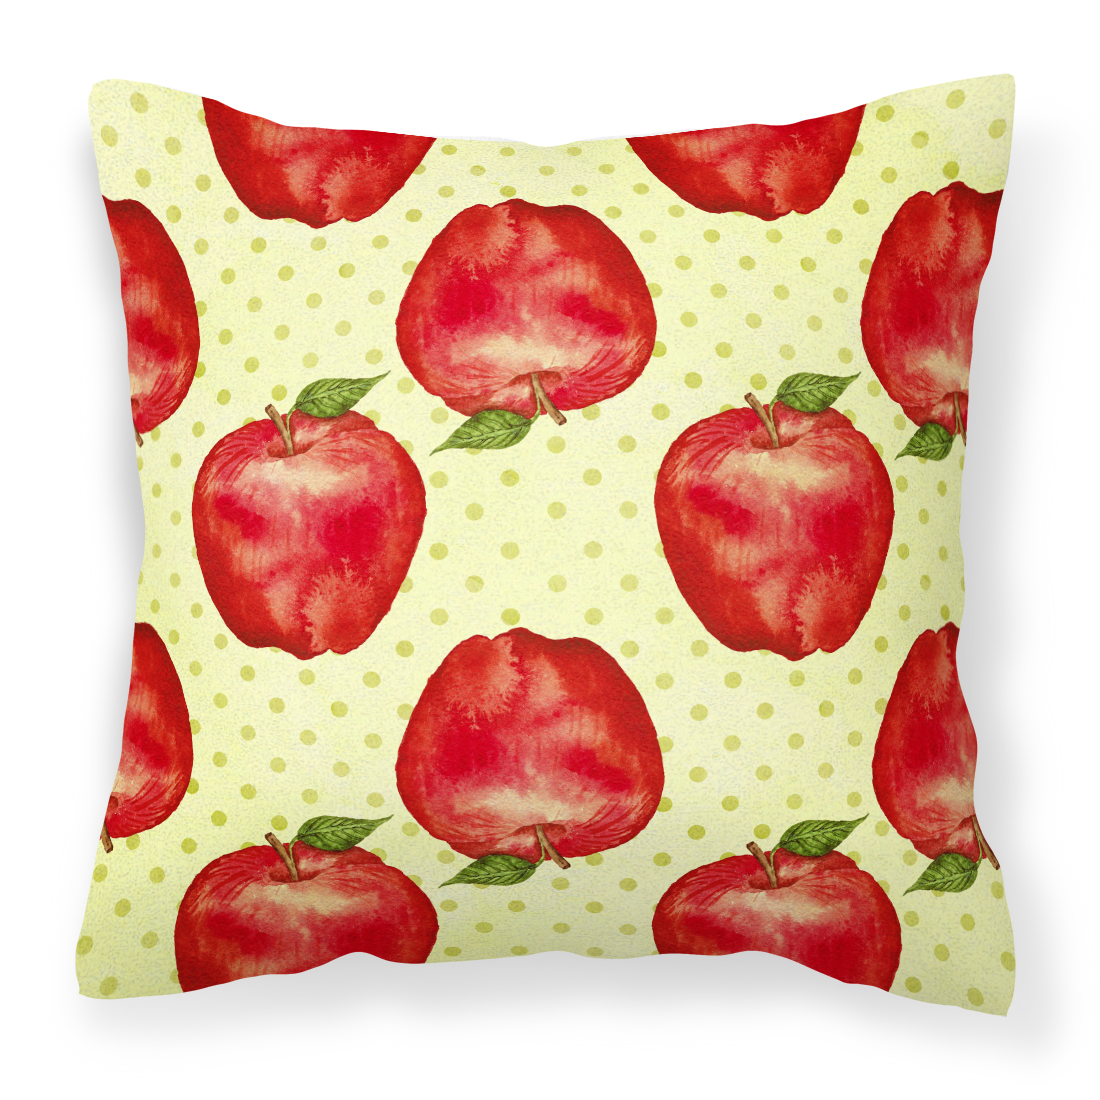 Watercolor Apples and Polkadots Fabric Decorative Pillow